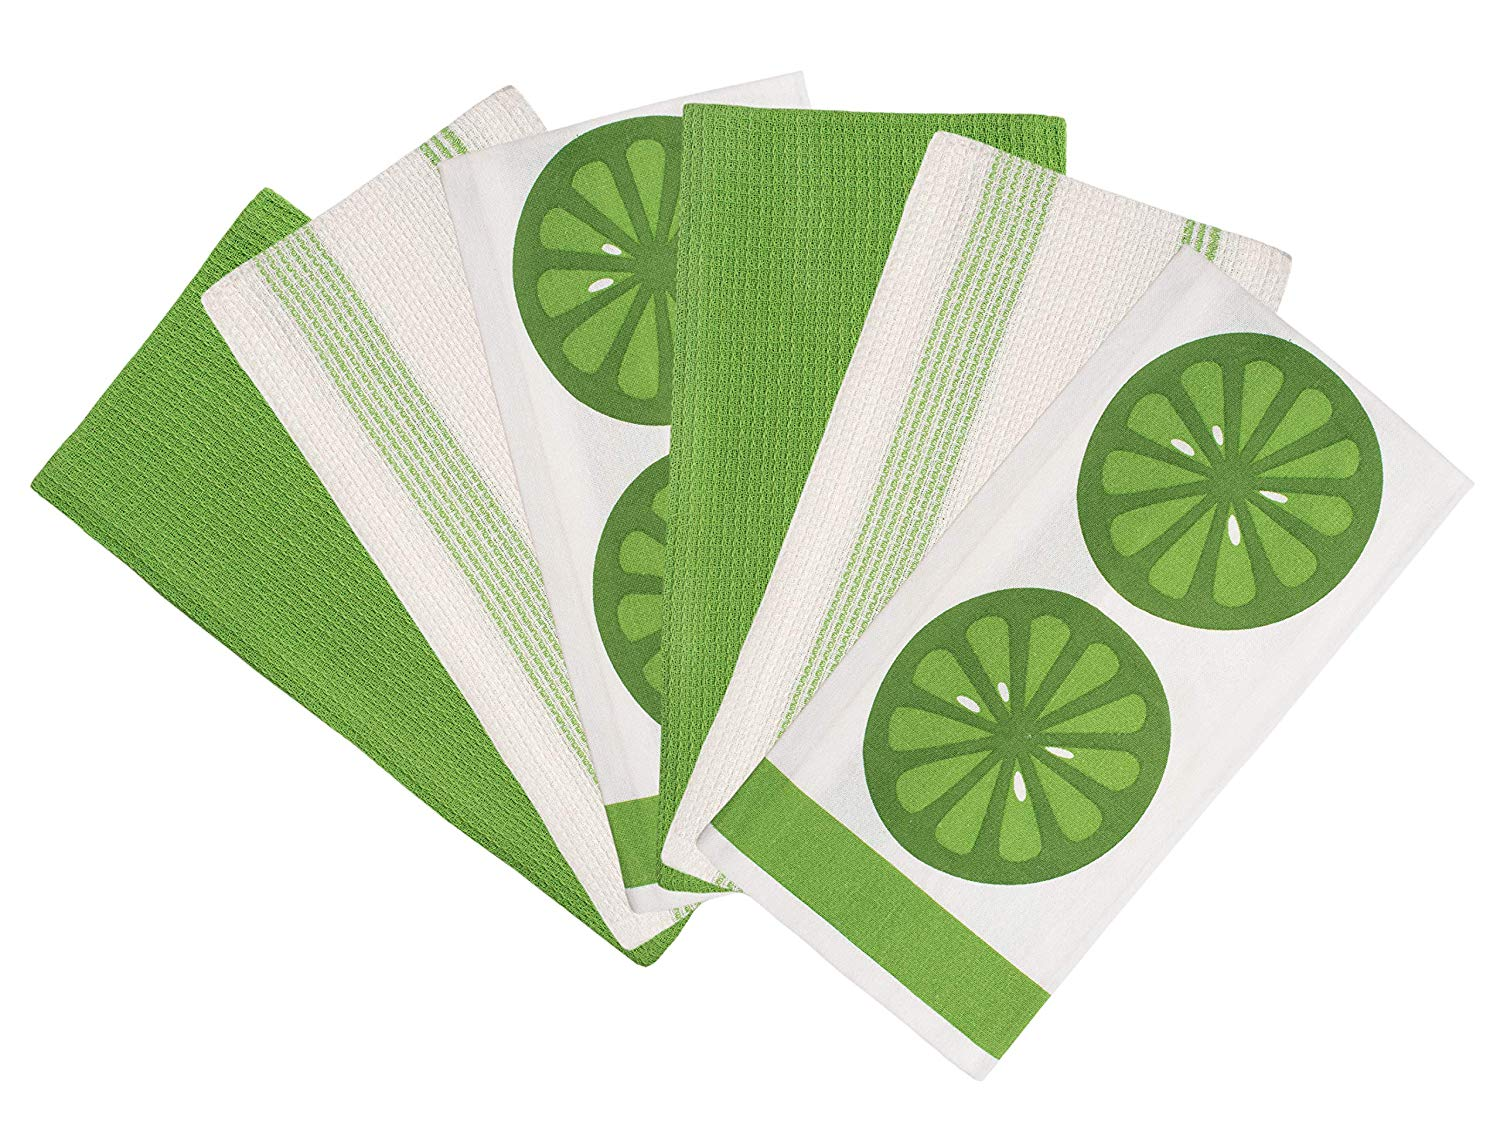 Glamburg Overzised Kitchen Towels - Dish Cloth - (6 Pack) Machine Washable 100% Cotton Kitchen Dishcloths, Dish Towel & Tea Towels, Printed - Solid and Stripe Set, 20x27 Inch - Multi Purpose - Green